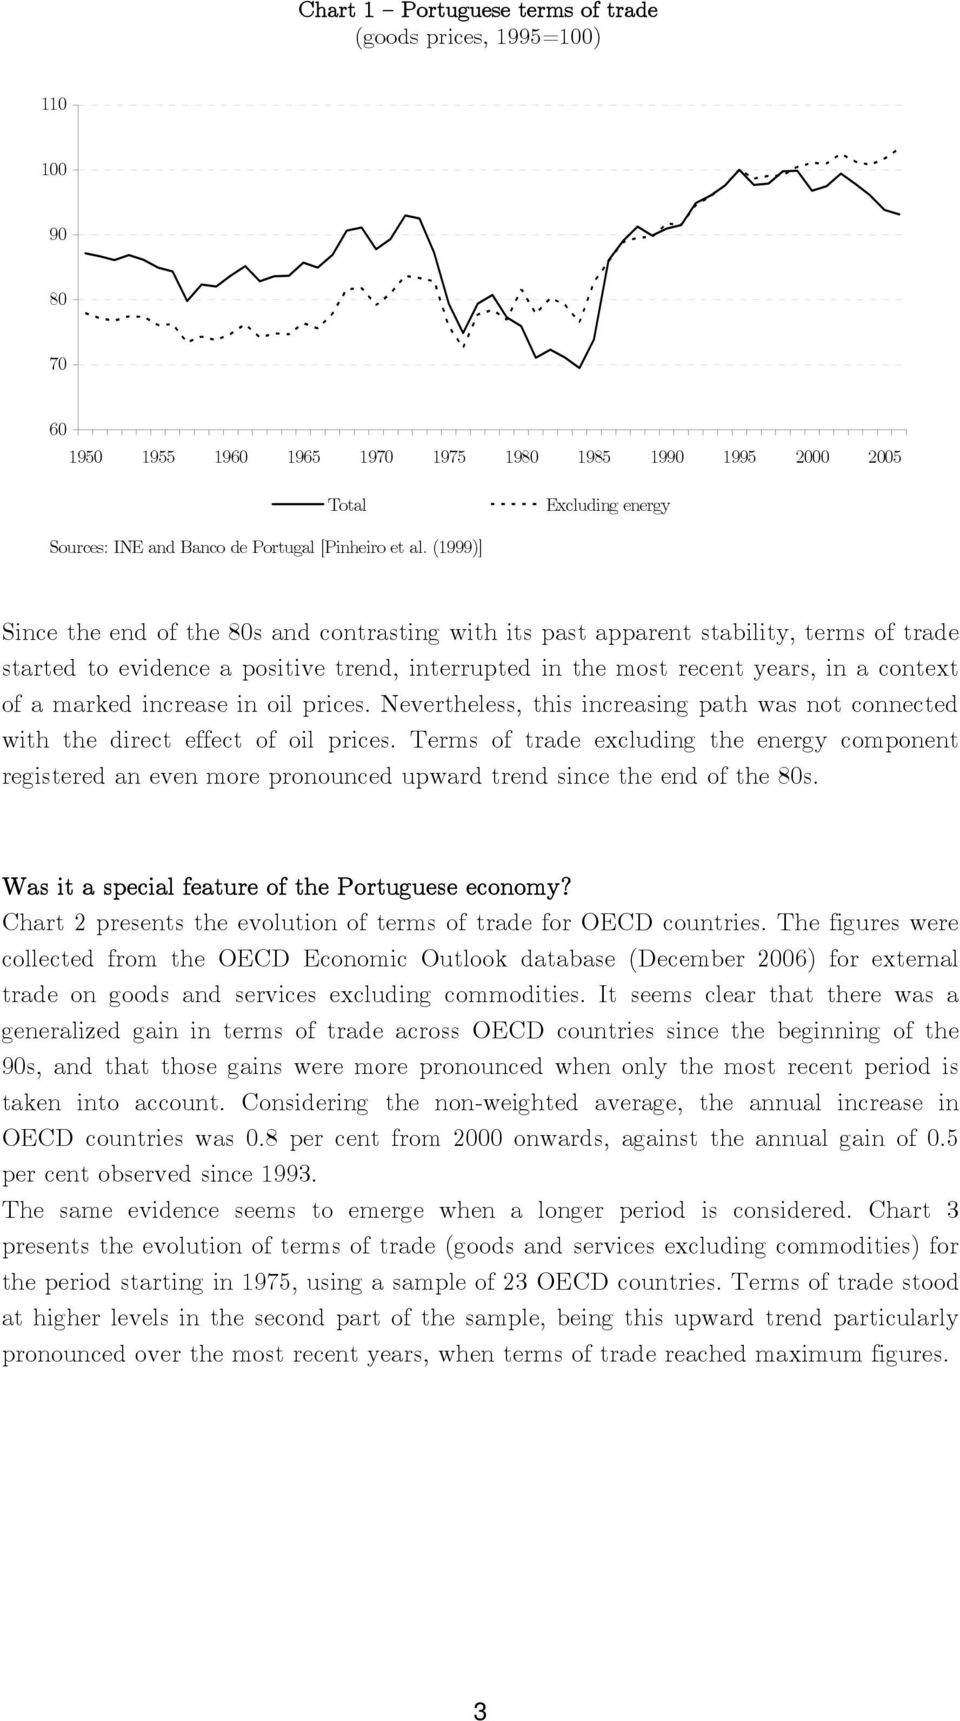 (1999)] Since the end of the 80s and contrasting with its past apparent stability, terms of trade started to evidence a positive trend, interrupted in the most recent years, in a context of a marked